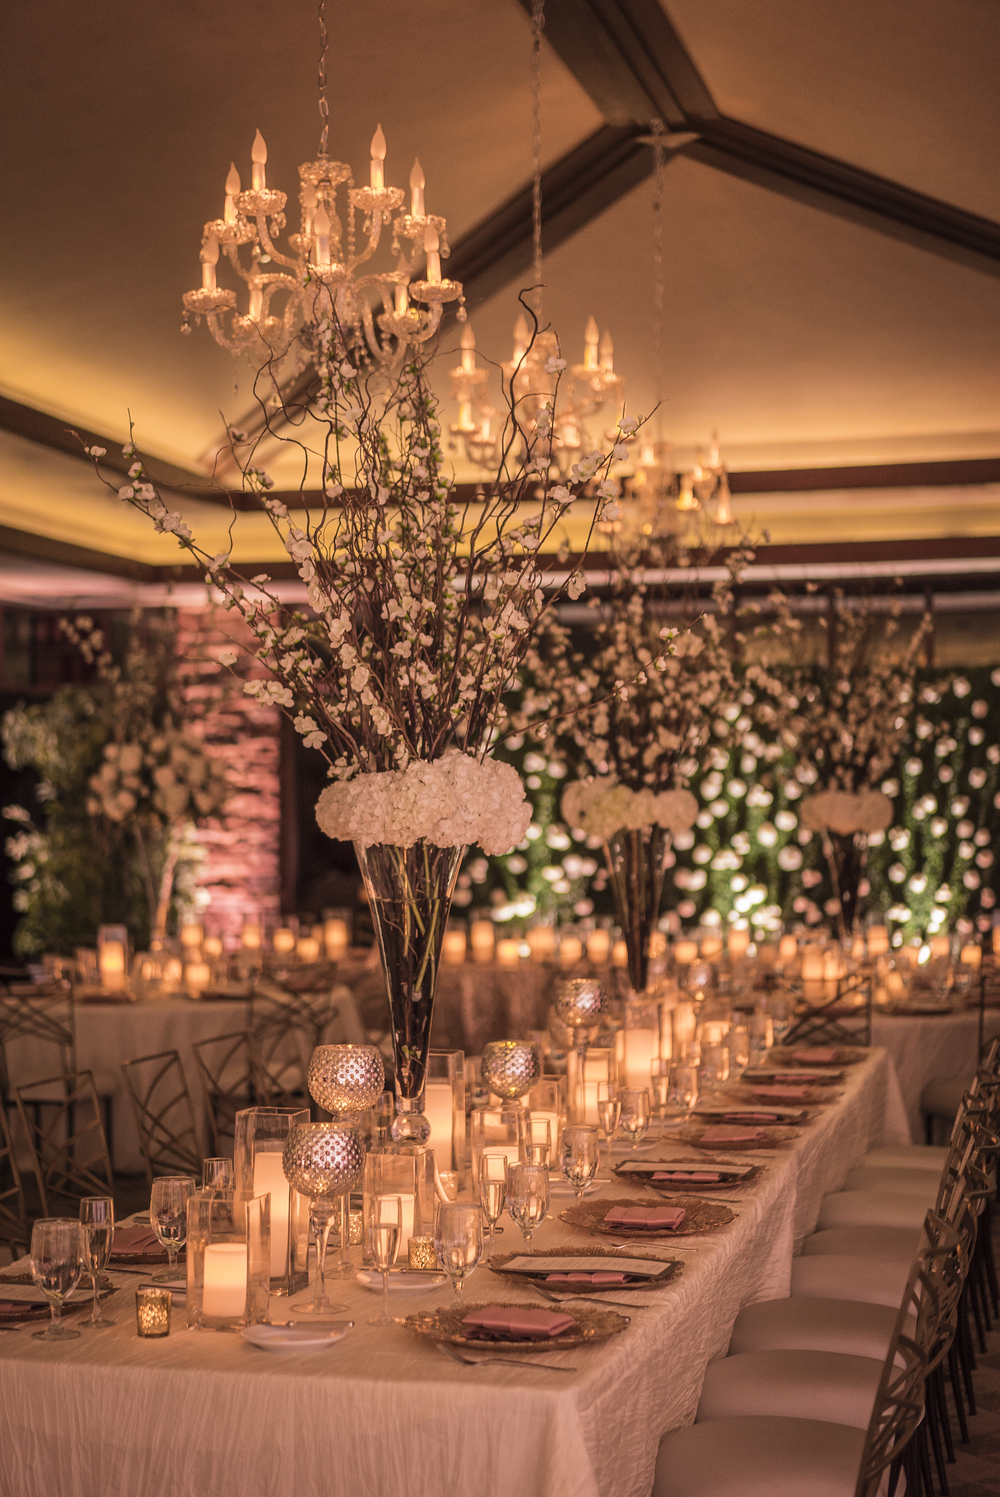 Long tables were topped with golden candles and tall centerpieces with cherry blossoms.   Las Vegas Wedding Planner Andrea Eppolito designed this luxury wedding at Red Rock Country Club. By Dzign handled the decor shot by wedding photographer Ella Gagiano.